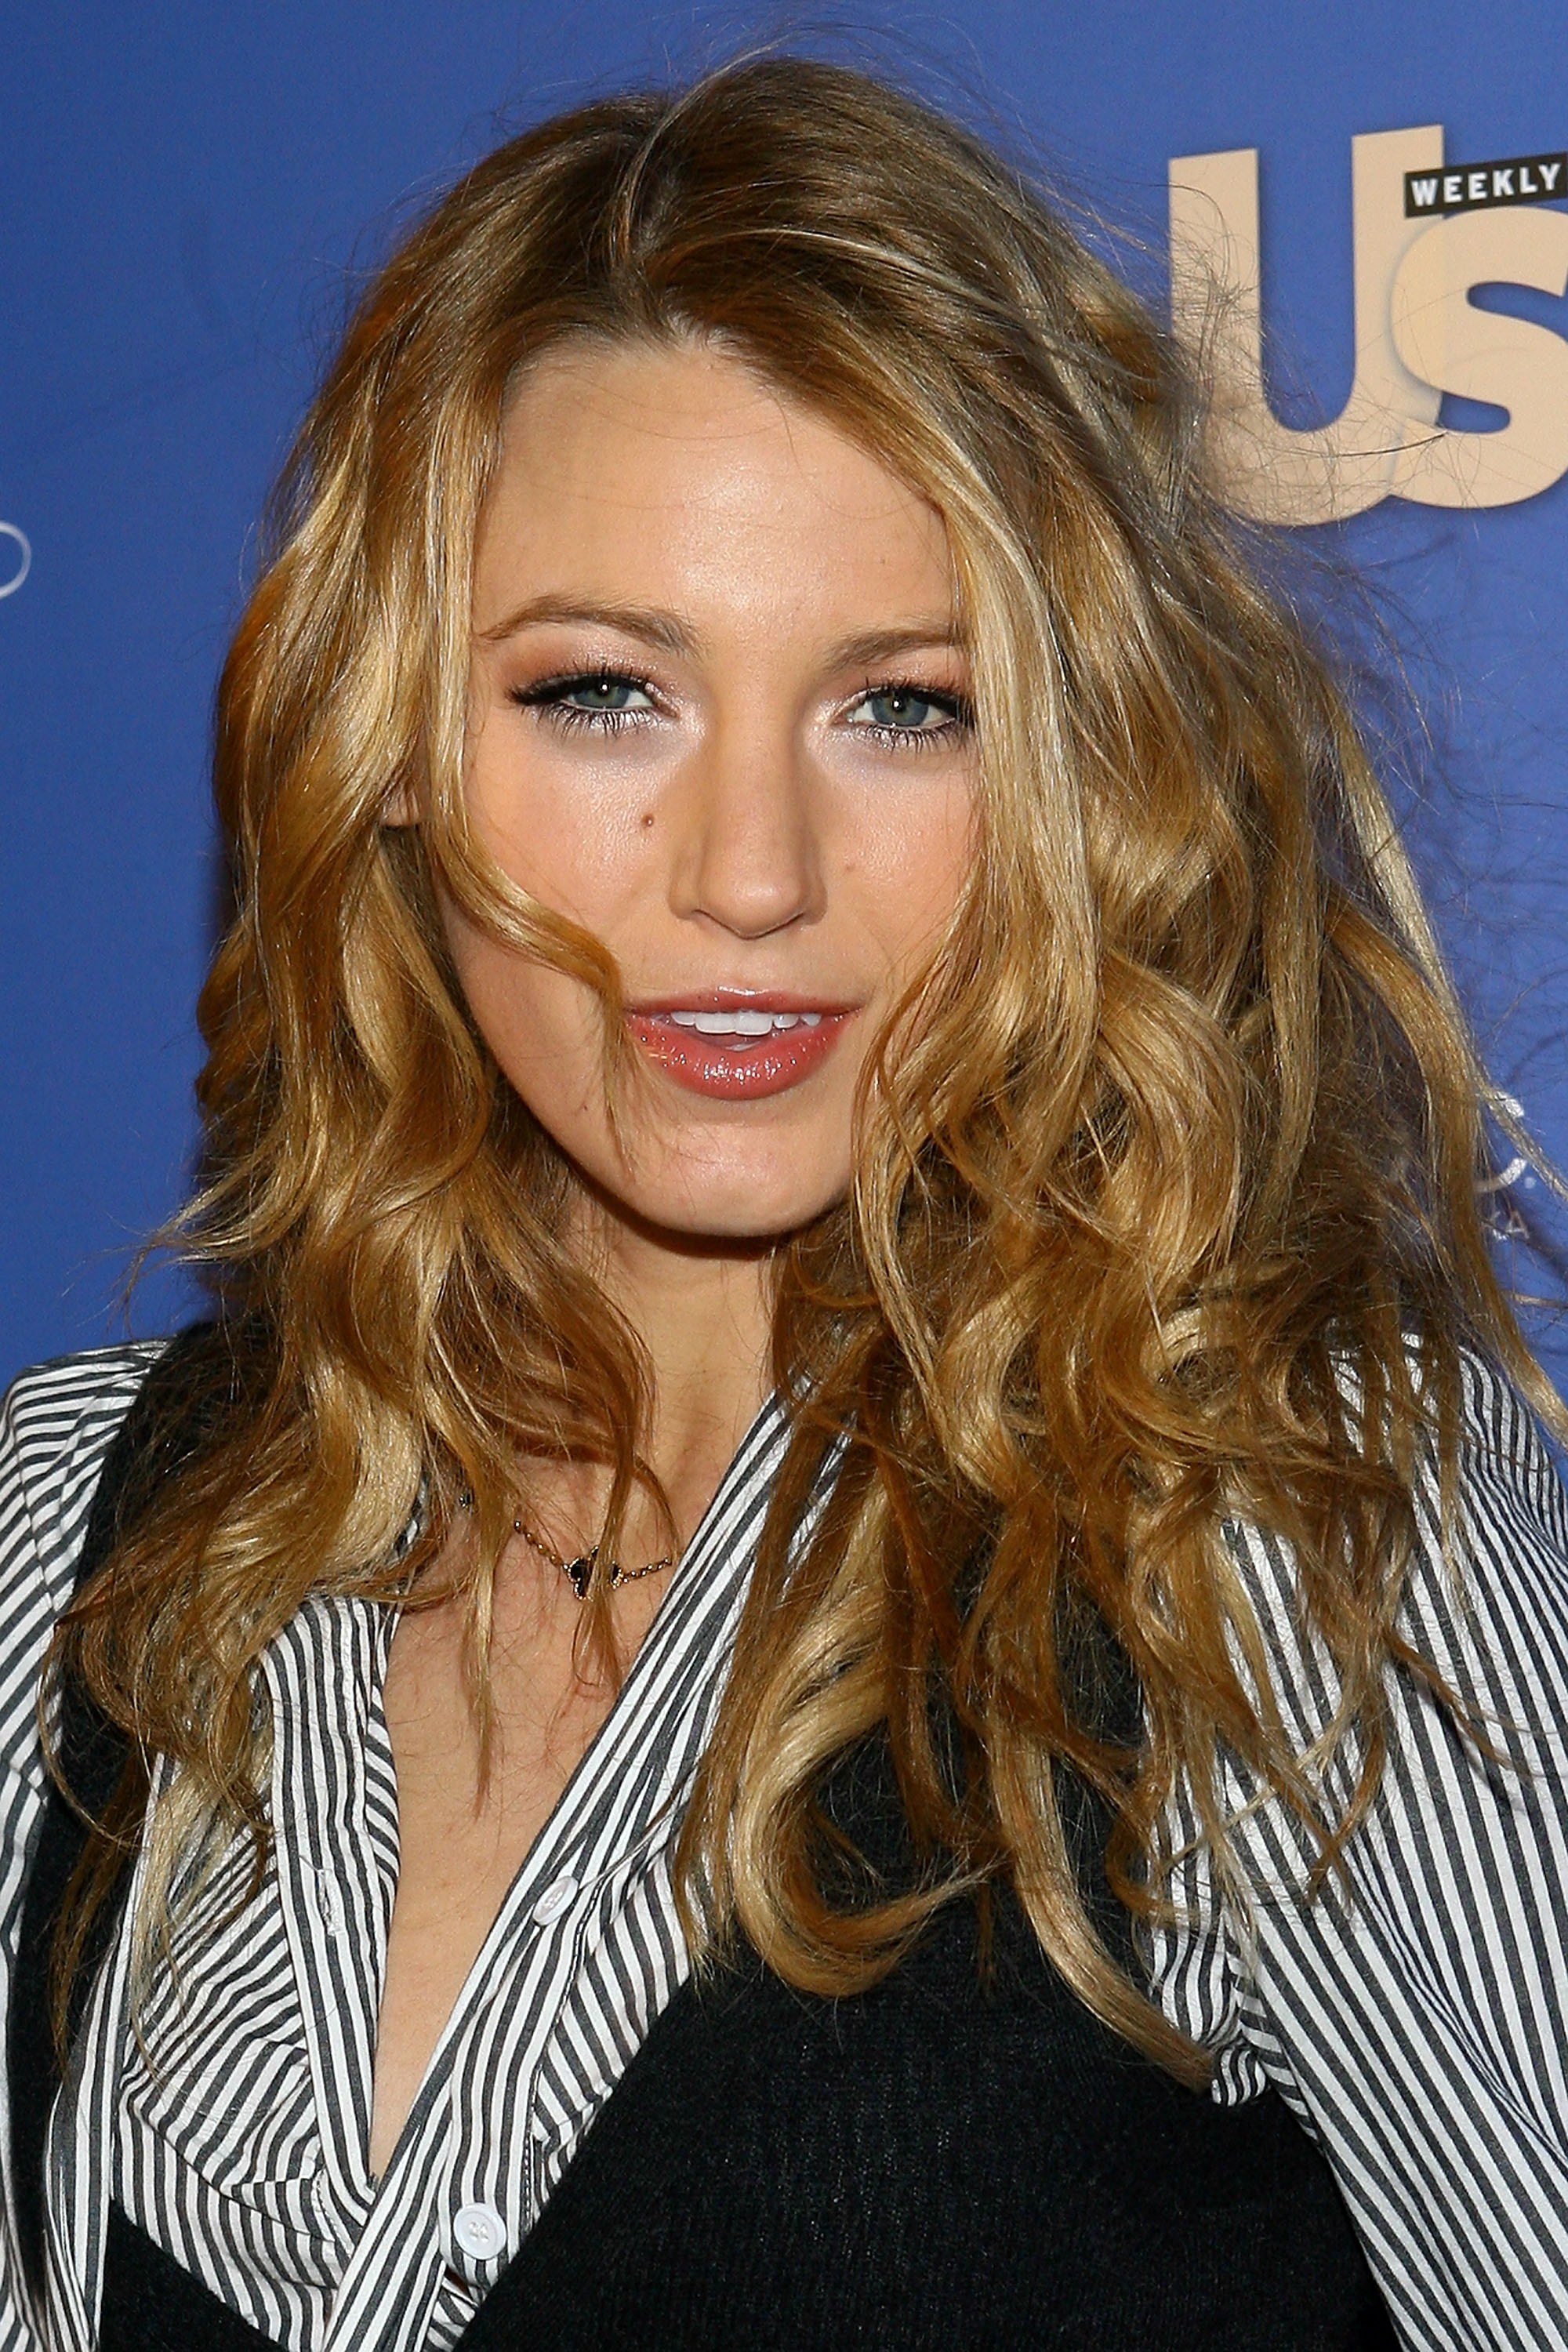 54978_Celebutopia-Blake_Lively-US_Weekly31s_Hot_Hollywood_Issue_celebration-03_122_929lo.jpg